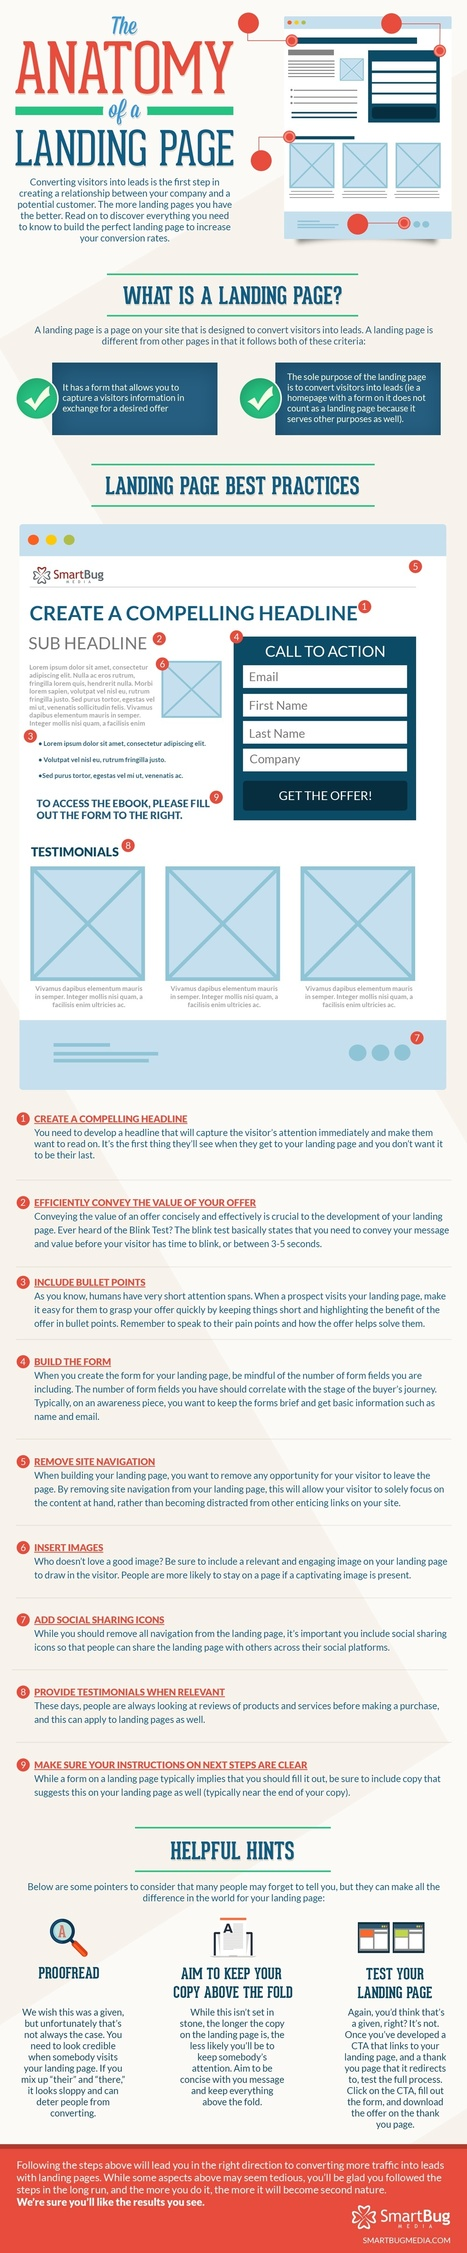 Anatomy of a Landing Page (Infographic) | Web Marketing | Scoop.it